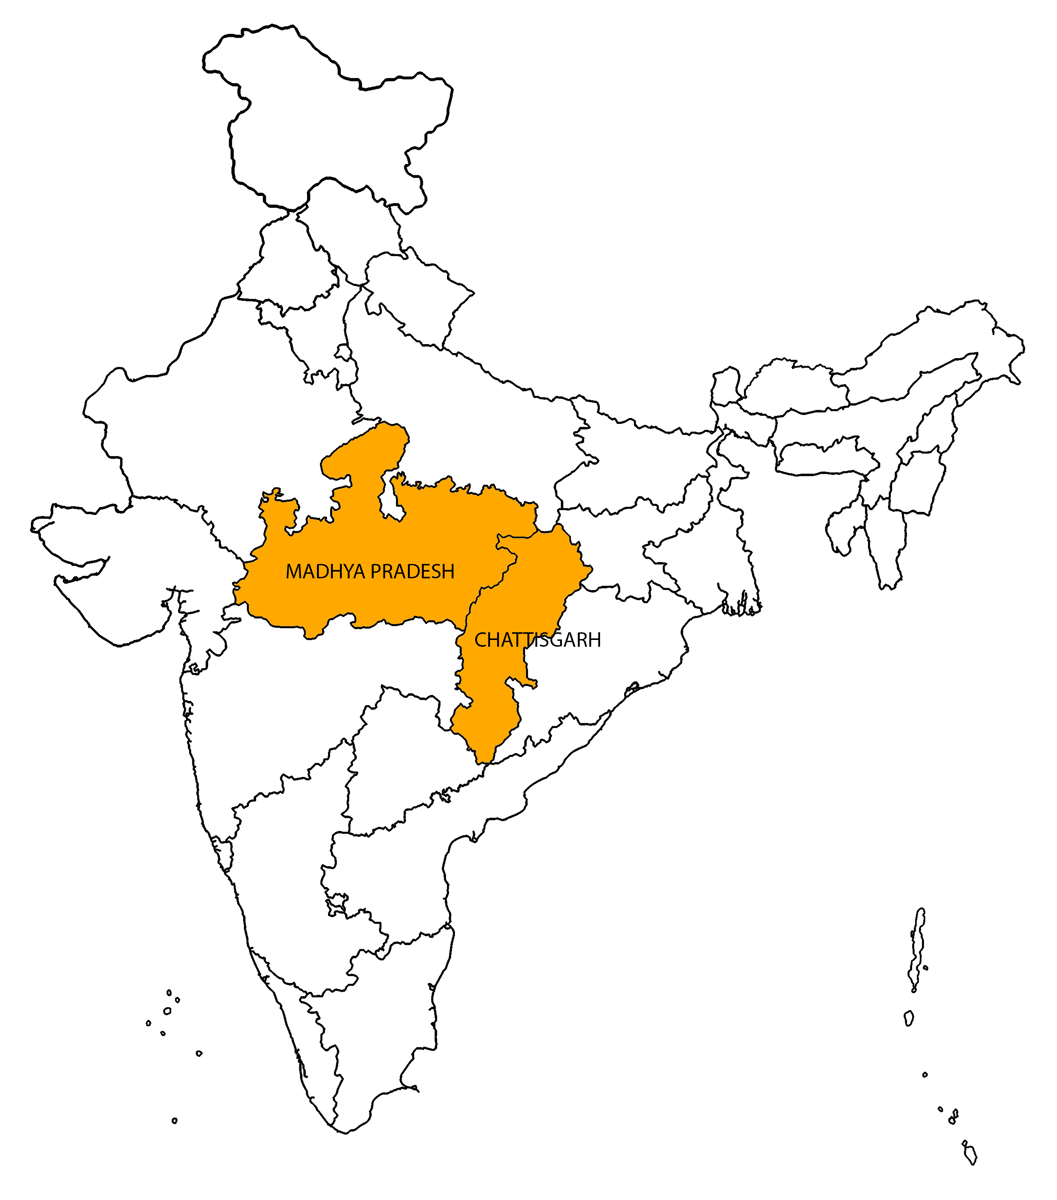 Central India